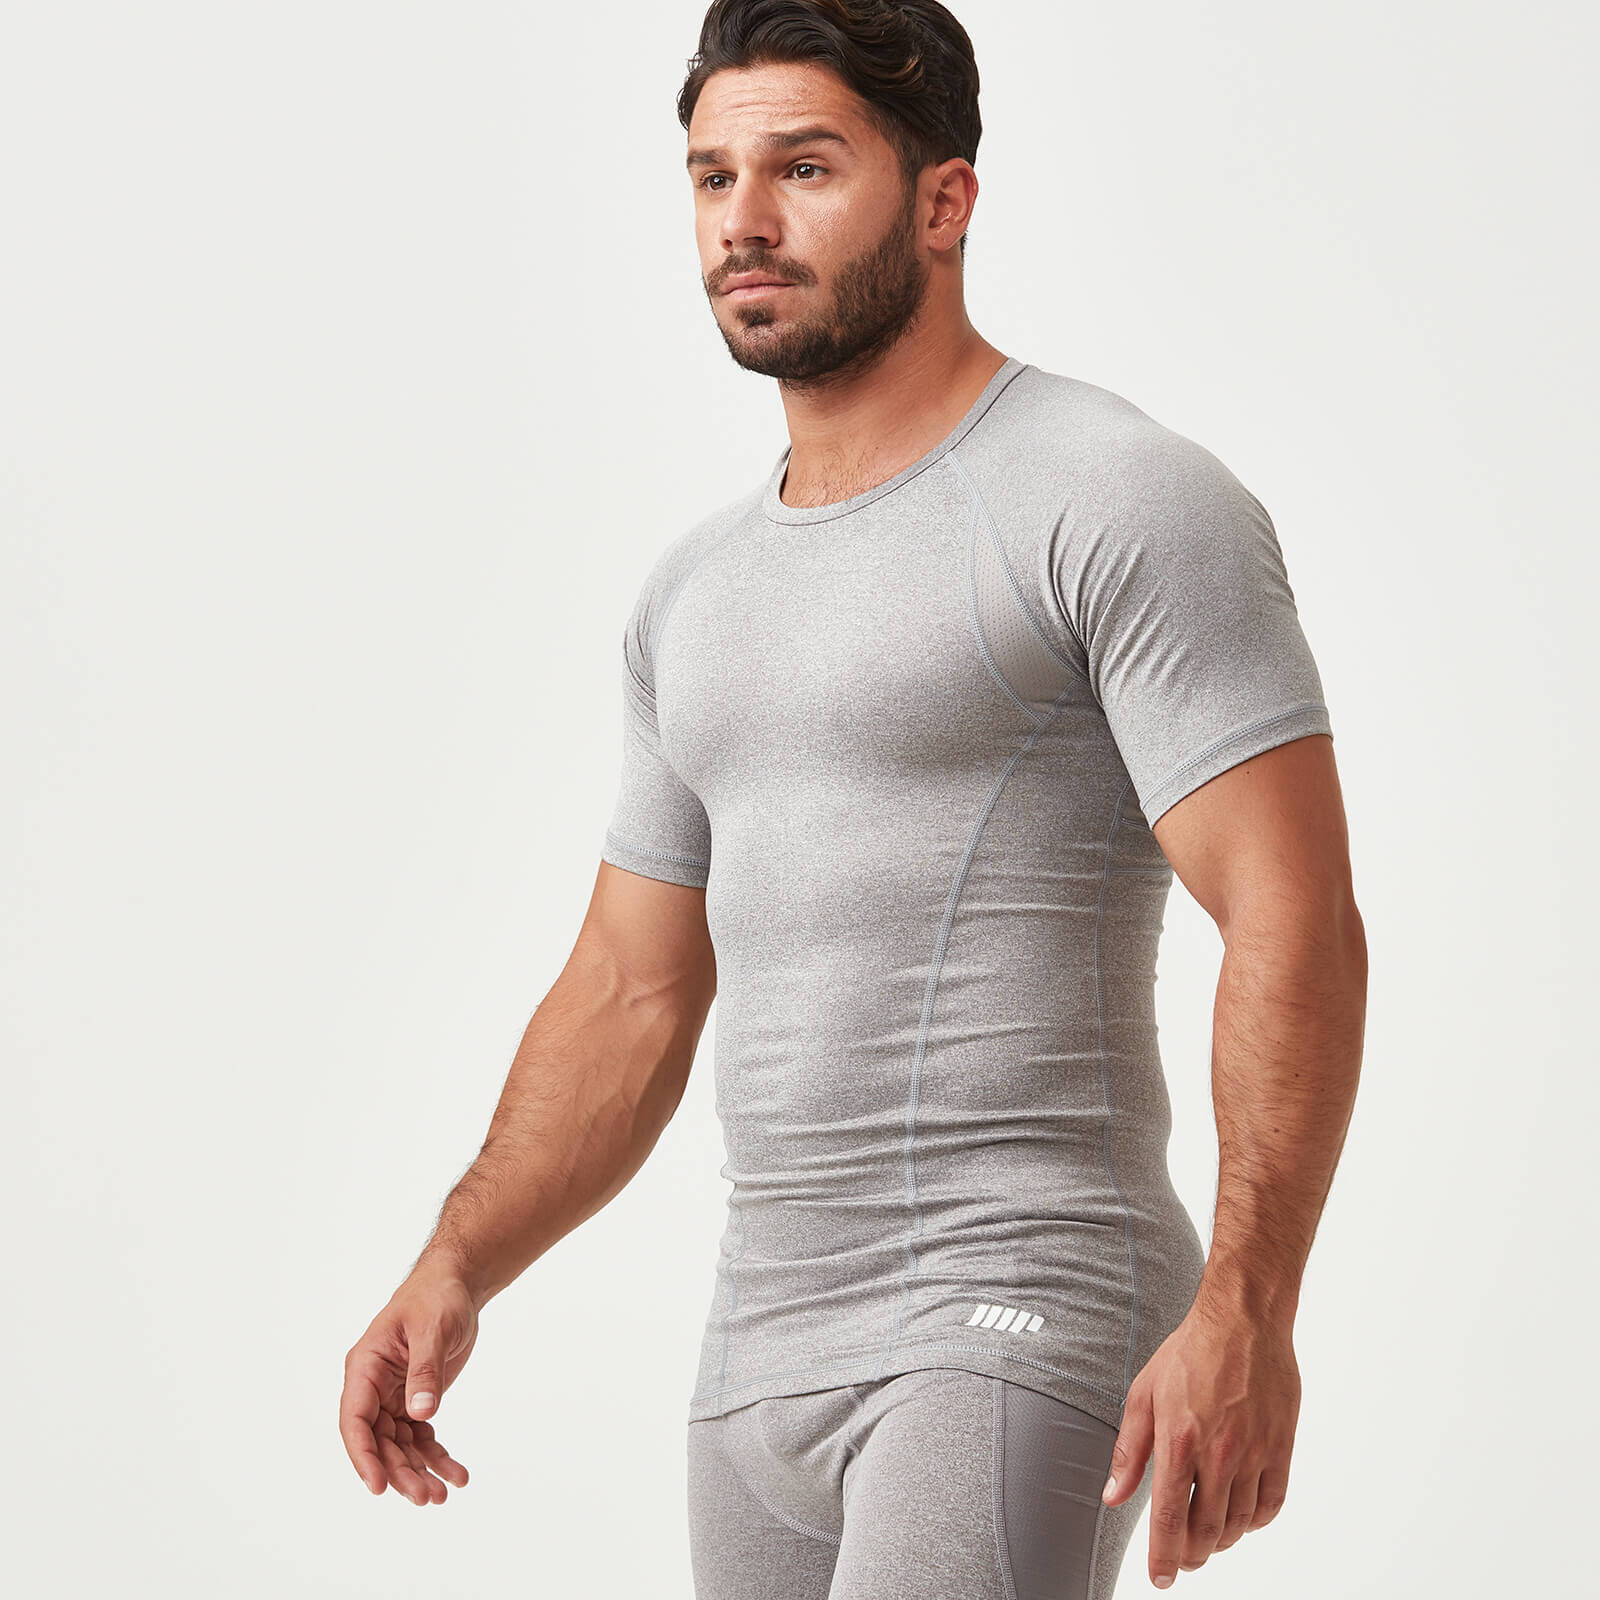 Charge Compression Short-Sleeve Top